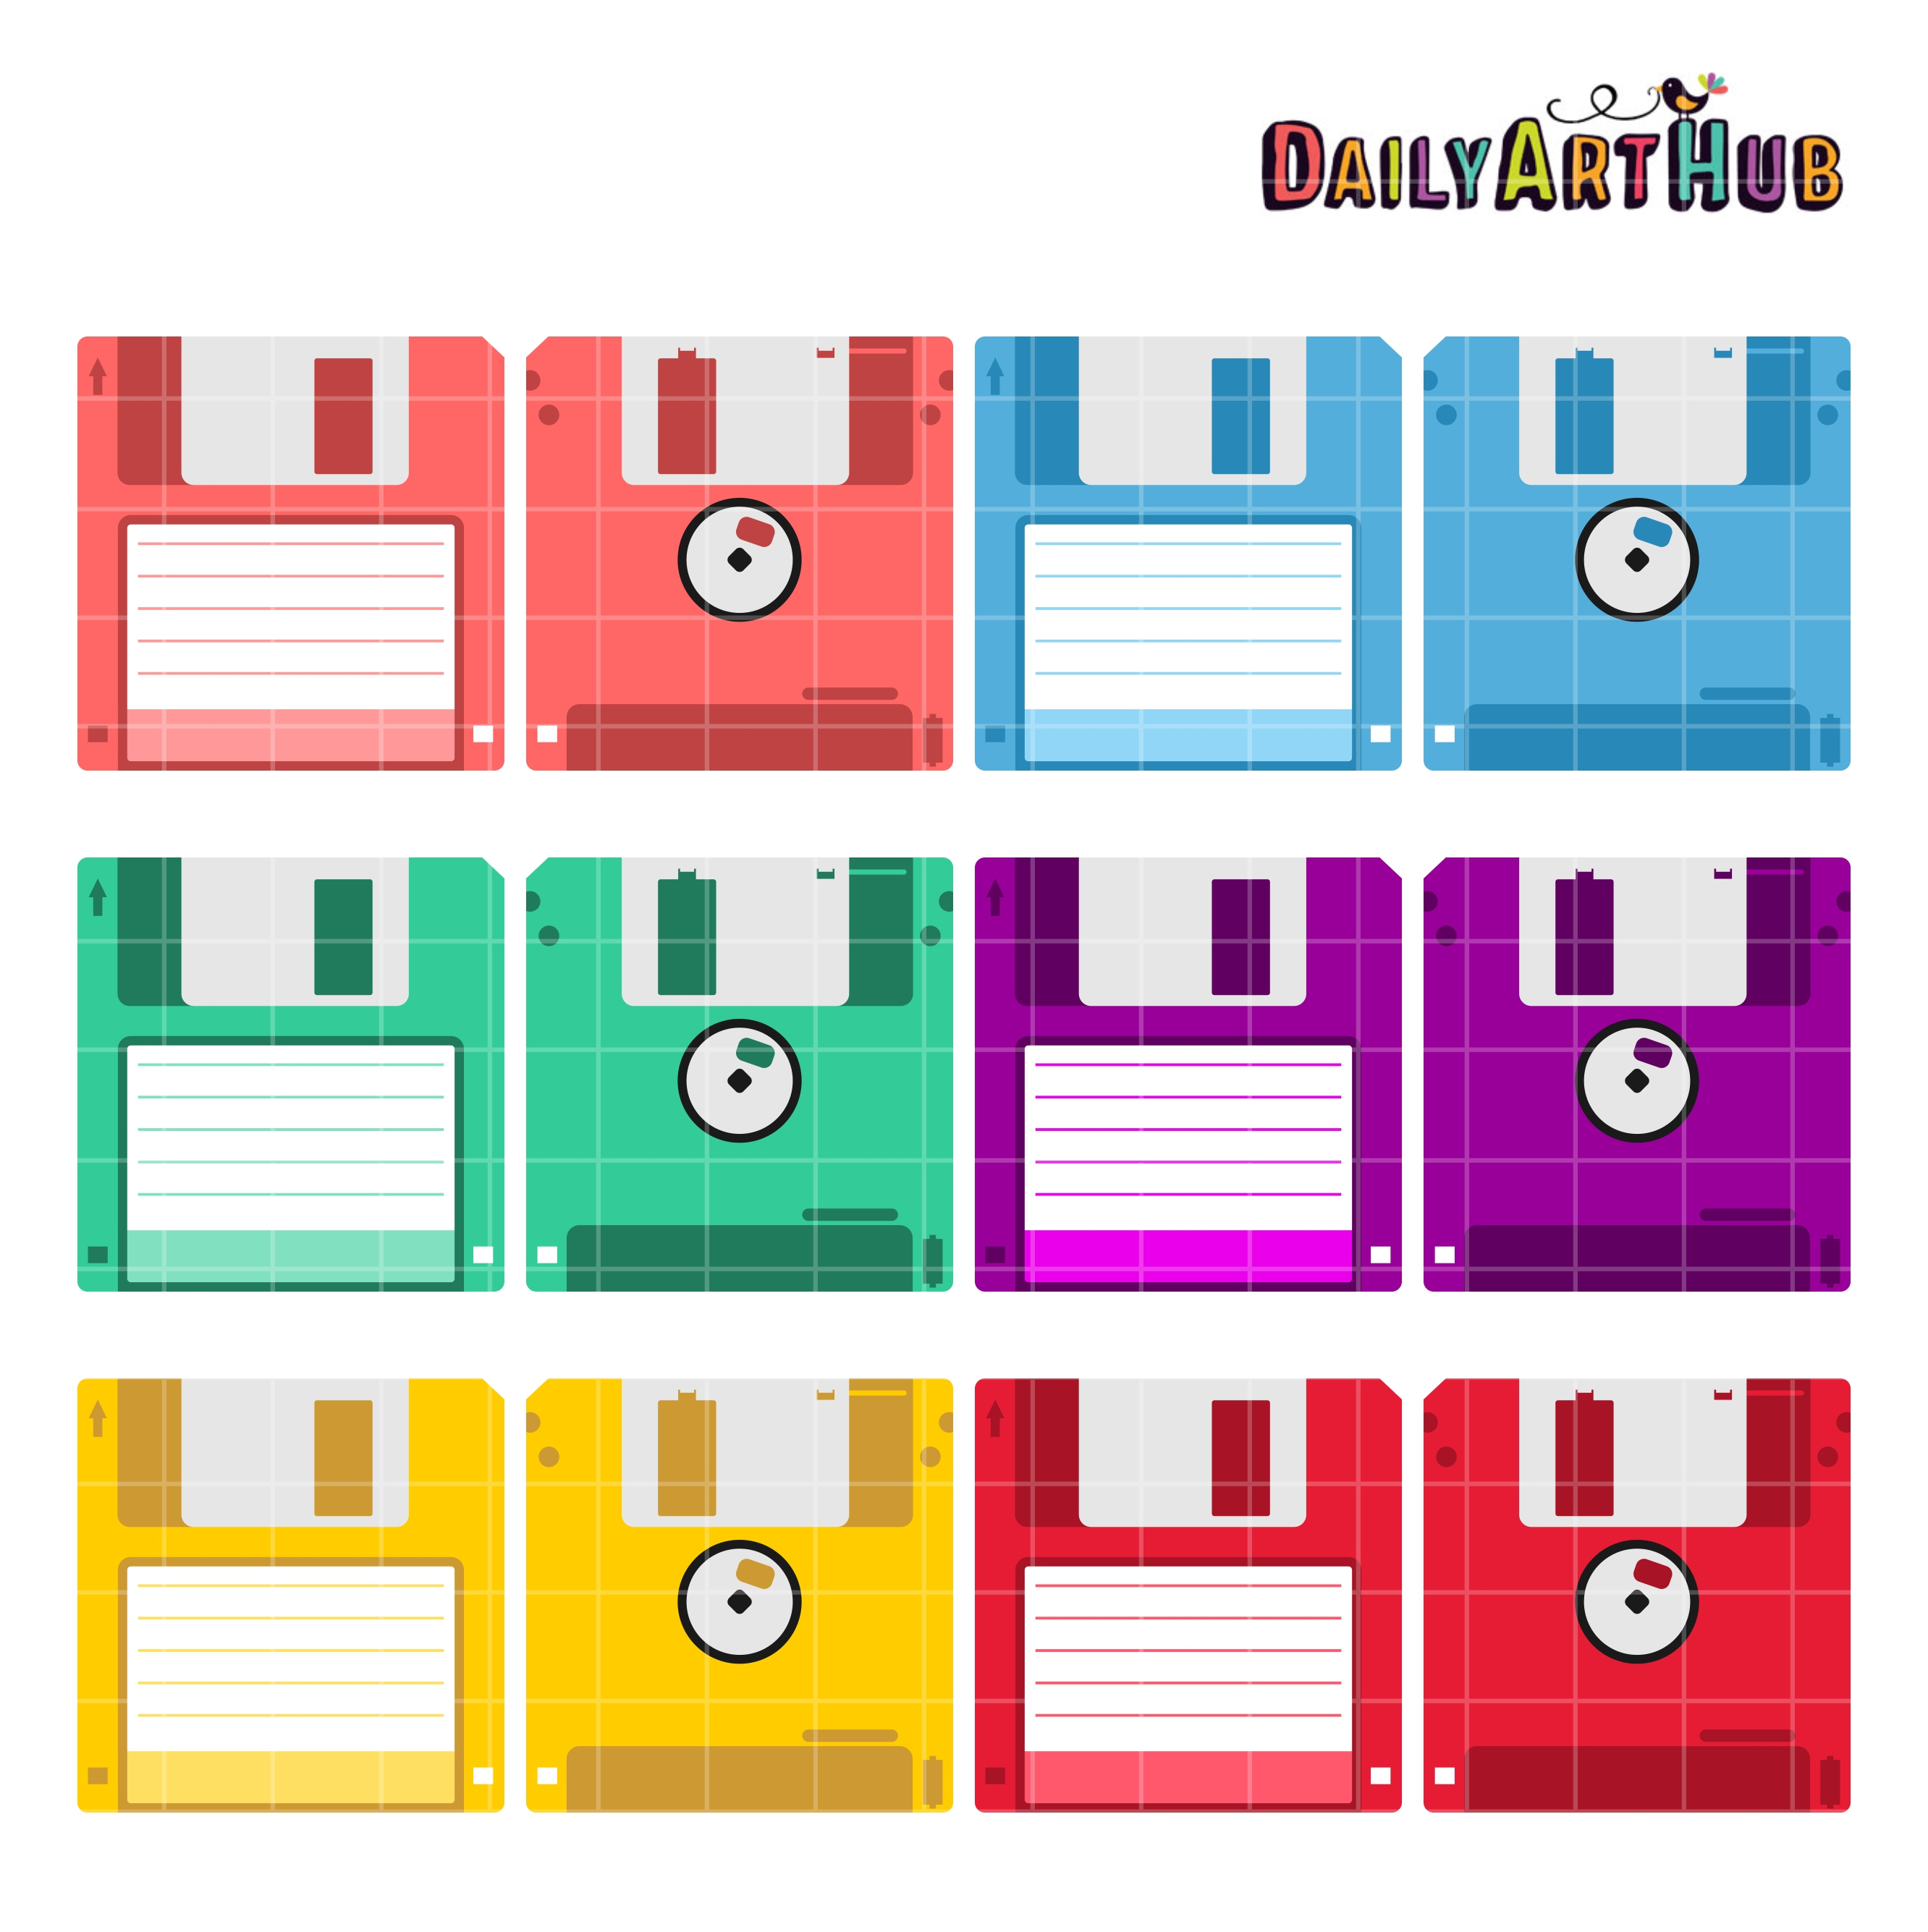 Floppy Disks Clip Art Set | Daily Art Hub